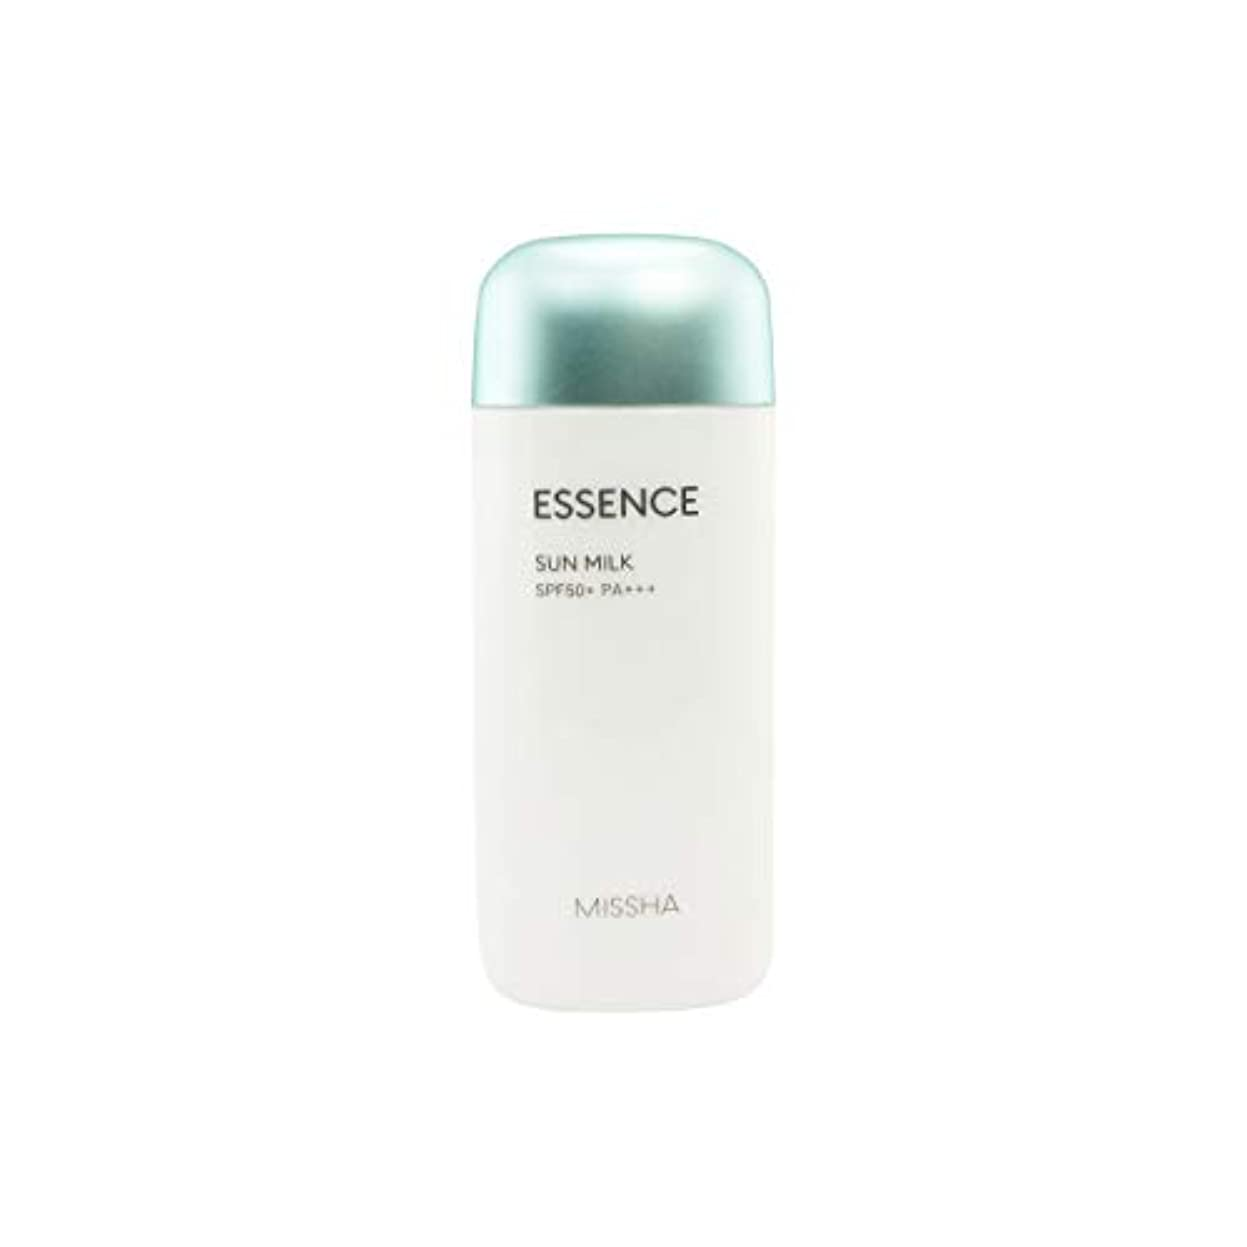 ヒープ請求書痴漢Missha All-around Safe Block Essence Sun Milk Spf50+/pa+++ 70ml [並行輸入品]